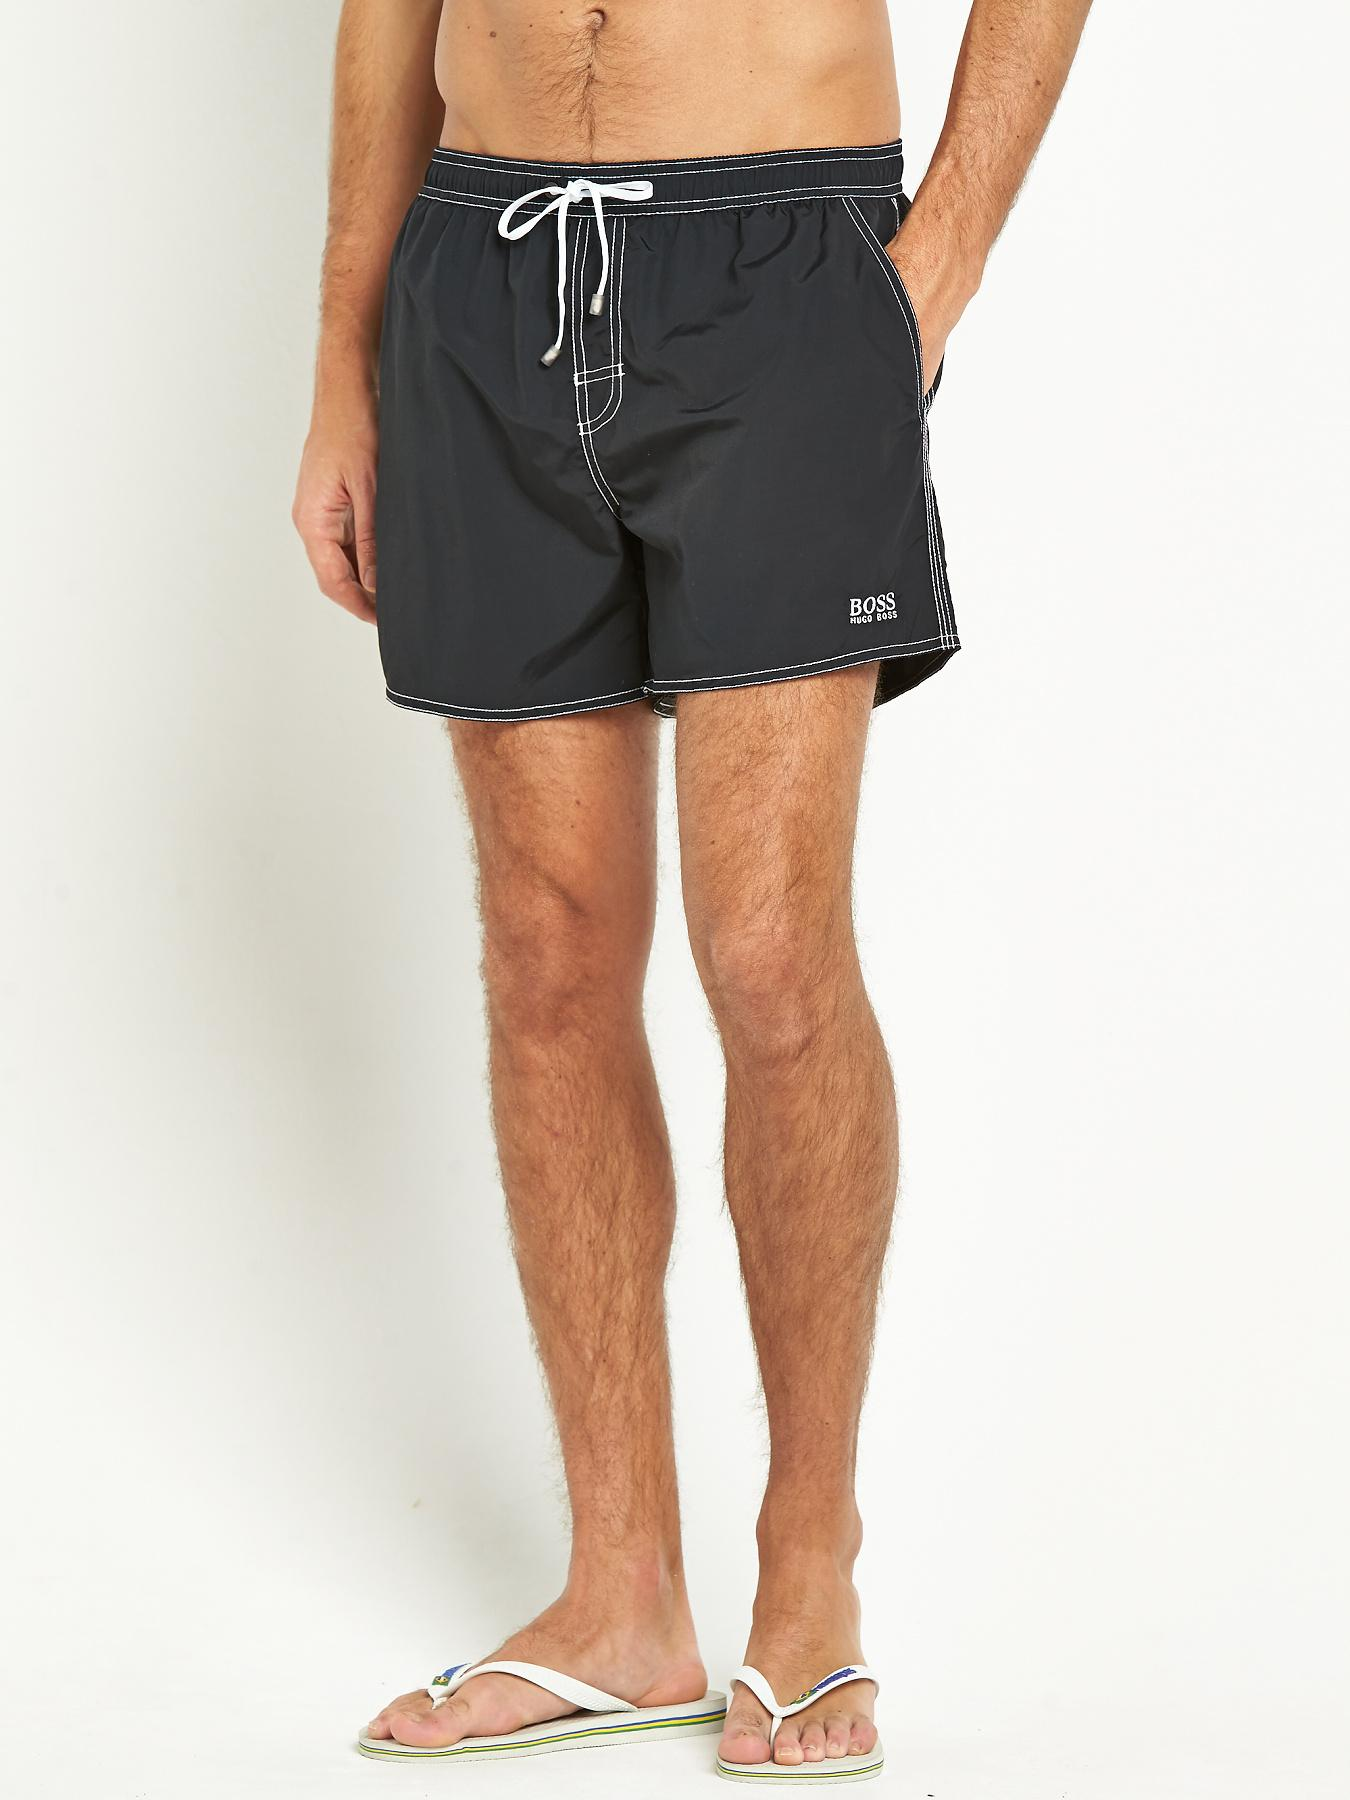 Hugo Boss Mens Lobster Swim Shorts - Black, Black